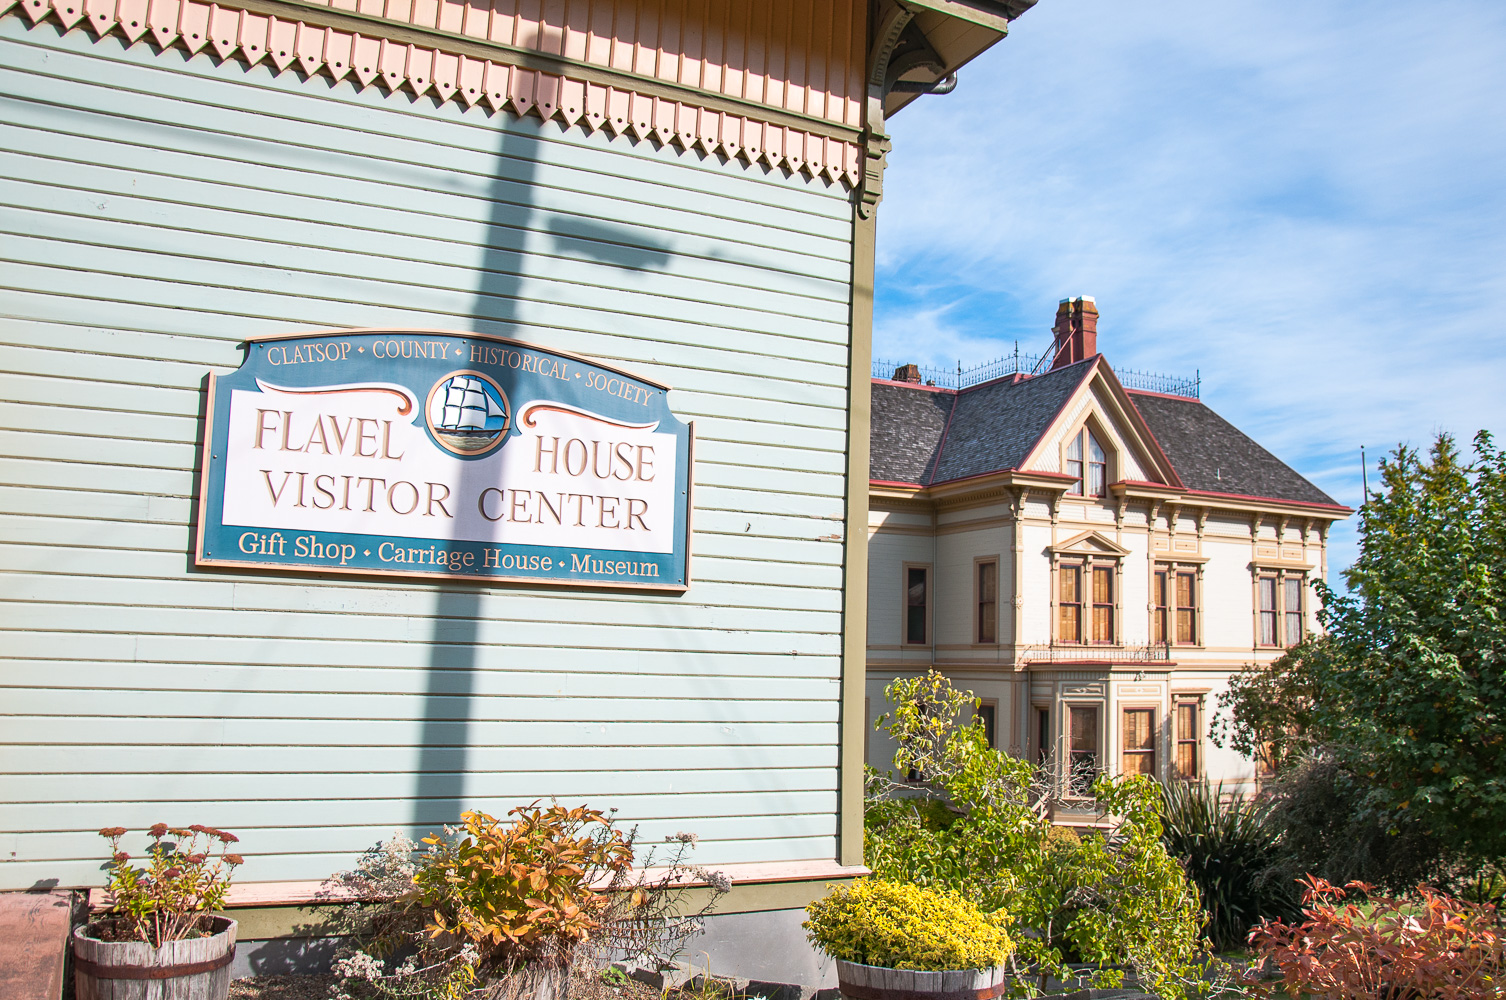 Flavel House and Visitor Center